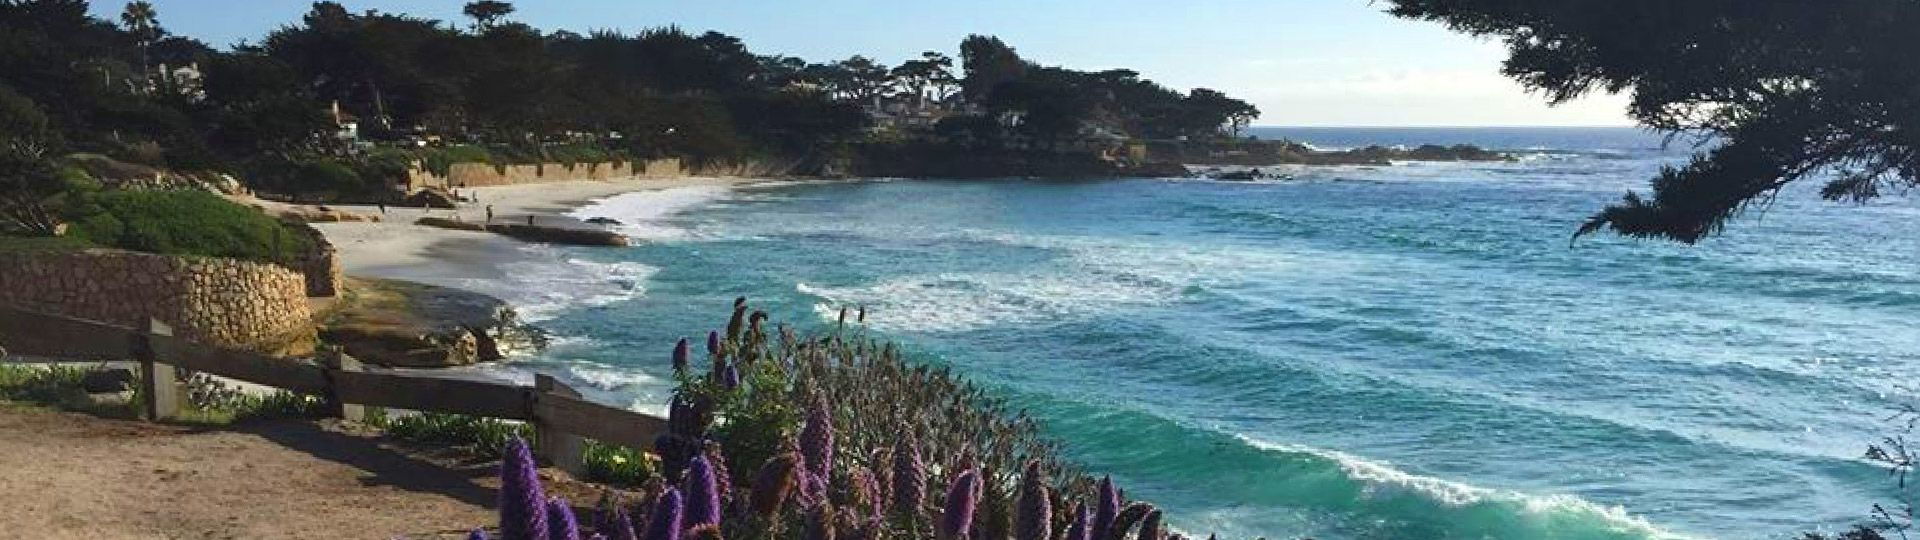 Carmel Beach Coastal Trail